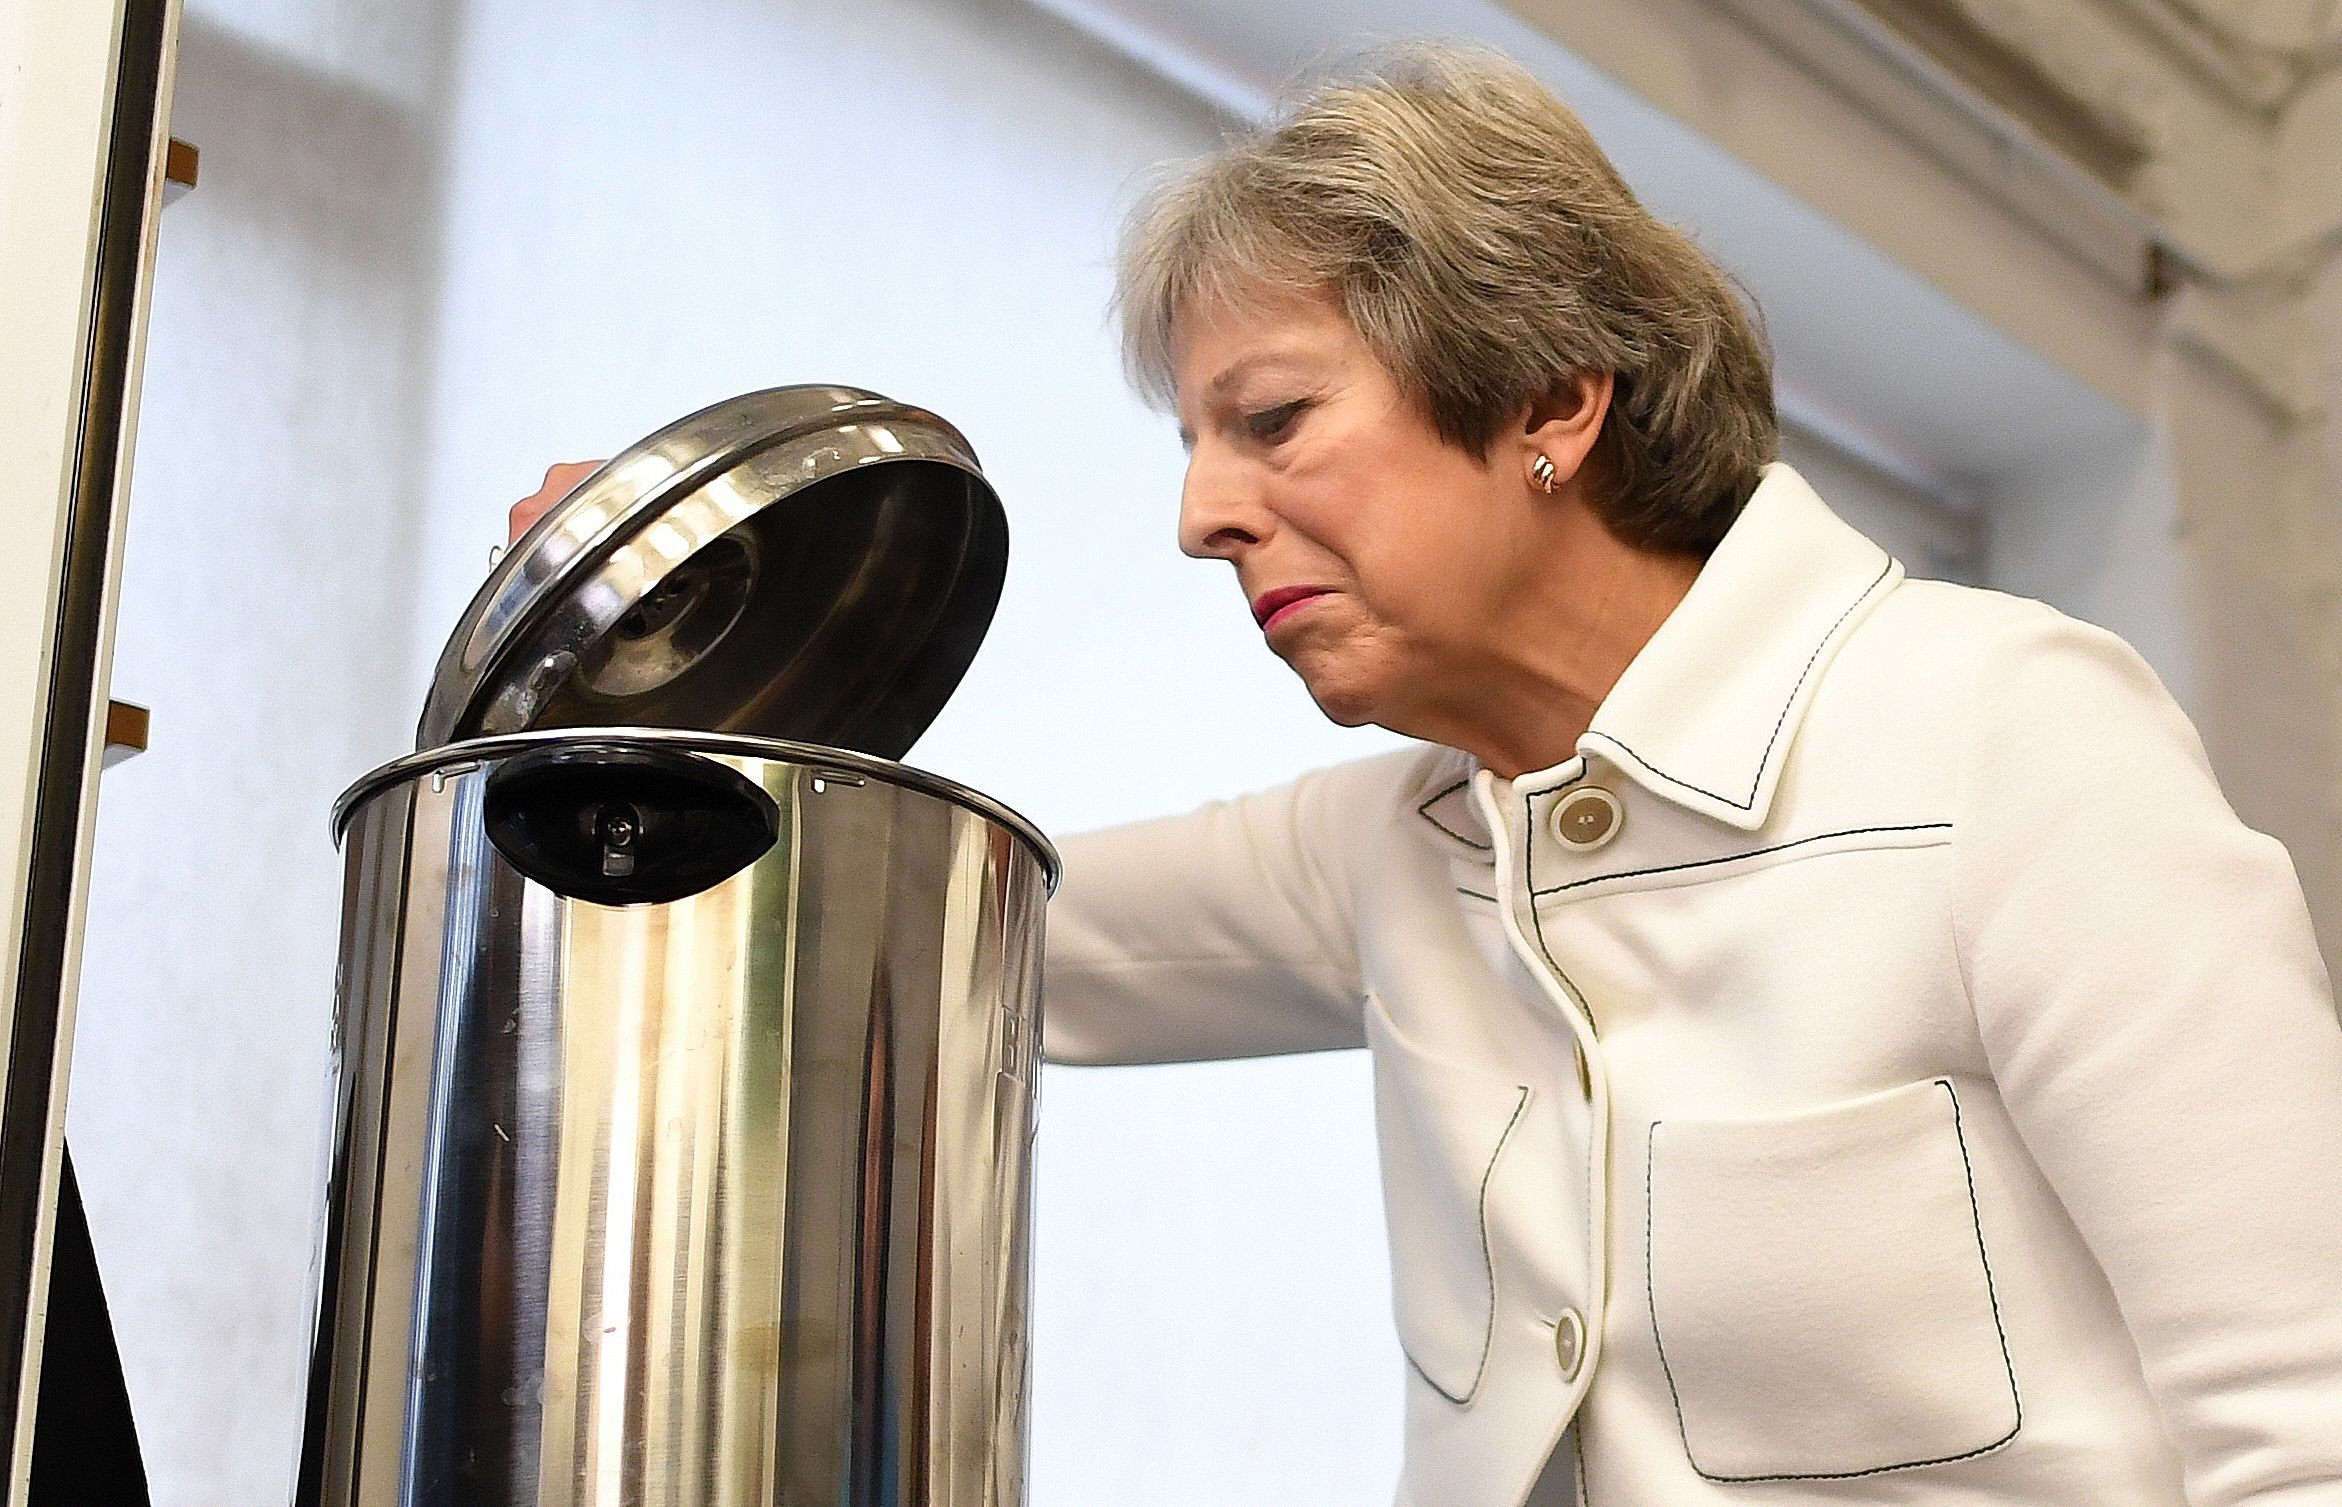 TOPSHOT - Britain's Prime Minister Theresa May peers into a hot water urn as she helps make drinks during a visit to social group in Vauxhall, south London, on October 15, 2018, where she launched the government's loneliness strategy. (Photo by Stefan Rousseau / POOL / AFP)STEFAN ROUSSEAU/AFP/Getty Images